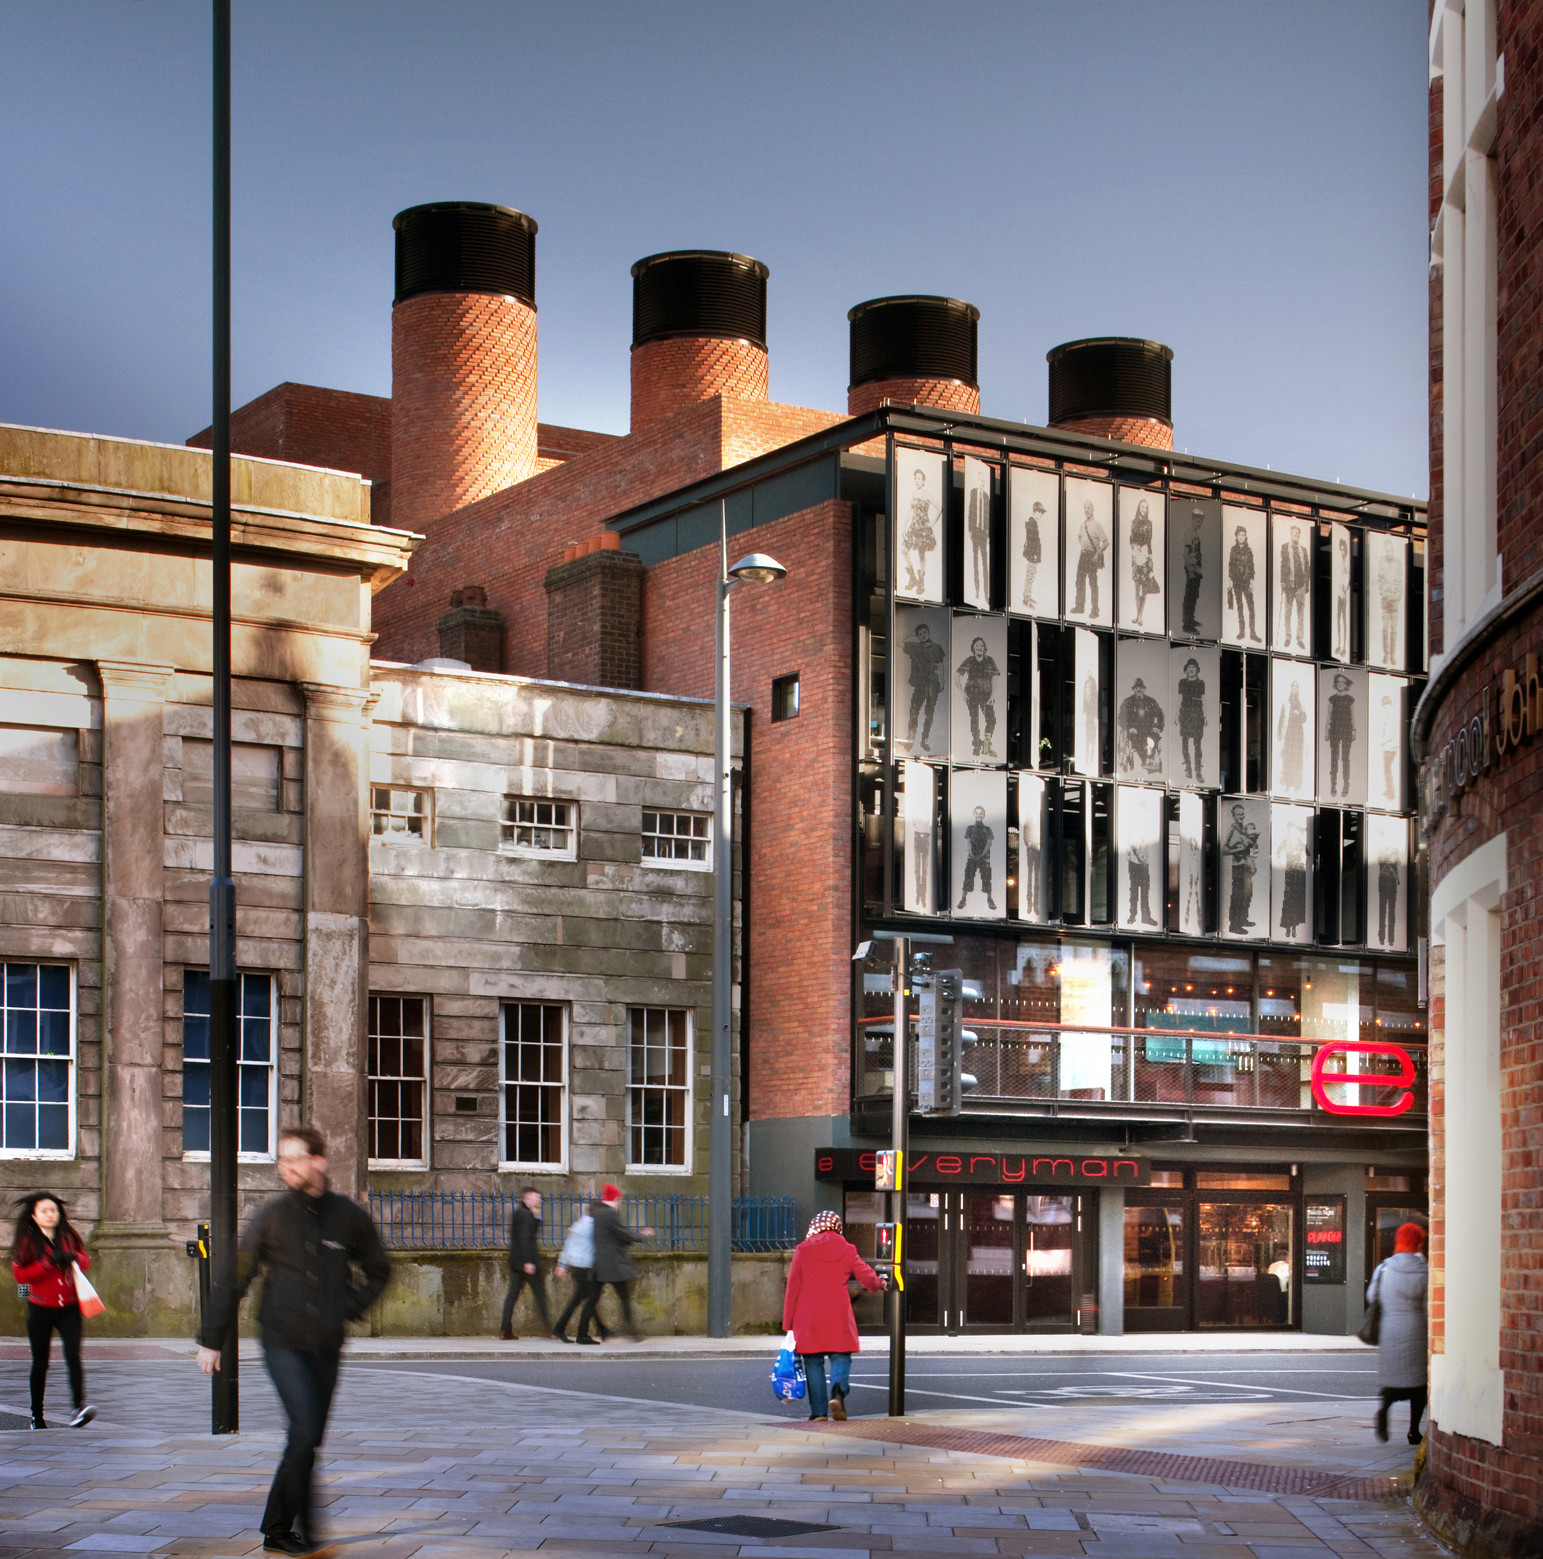 RIBA Awards 2015: Call For Entries, Winner of the 2014 RIBA Stirling Prize: Everyman Theatre (Liverpool) / Haworth Tompkins. Image © Philip Vile